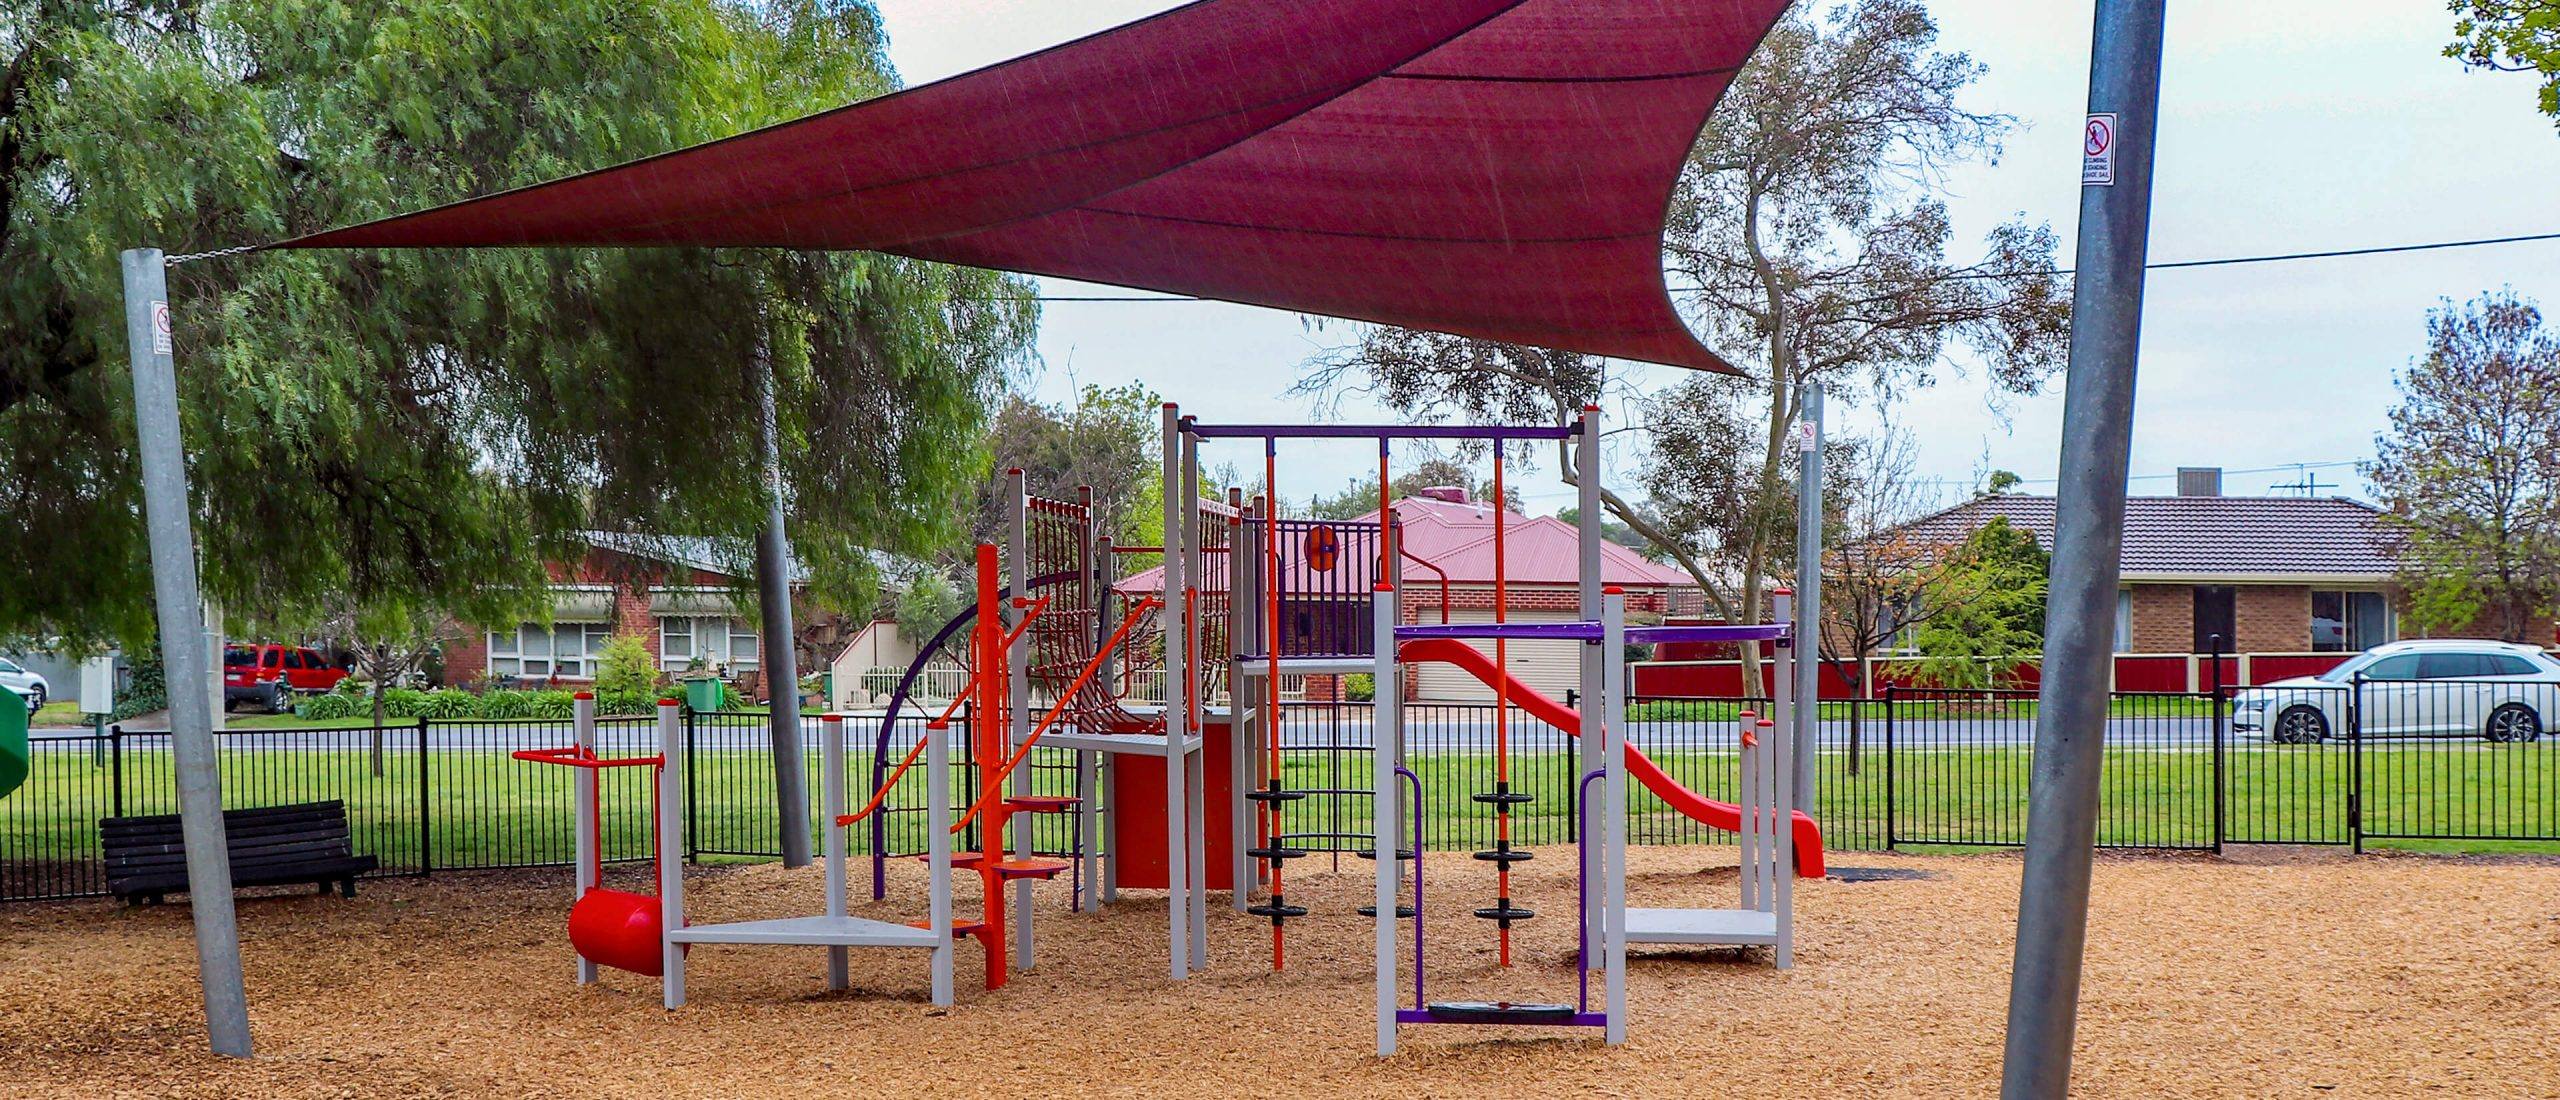 Shade Structures | Kids Health & Wellbeing